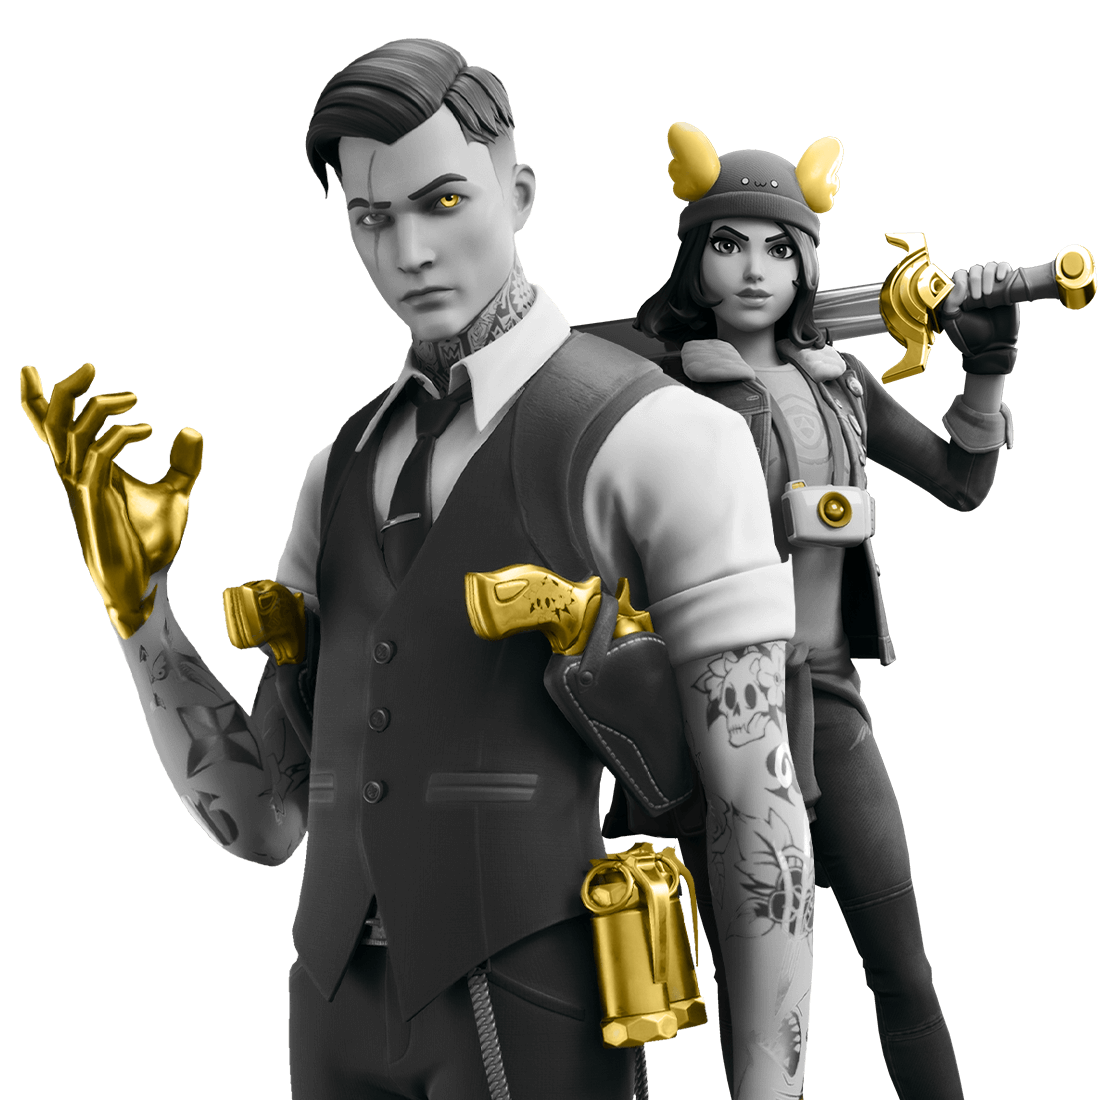 Fortnite Champion Series Chapter 2 Season 2 Fortnite png you can download 60 free fortnite png images. fortnite champion series chapter 2